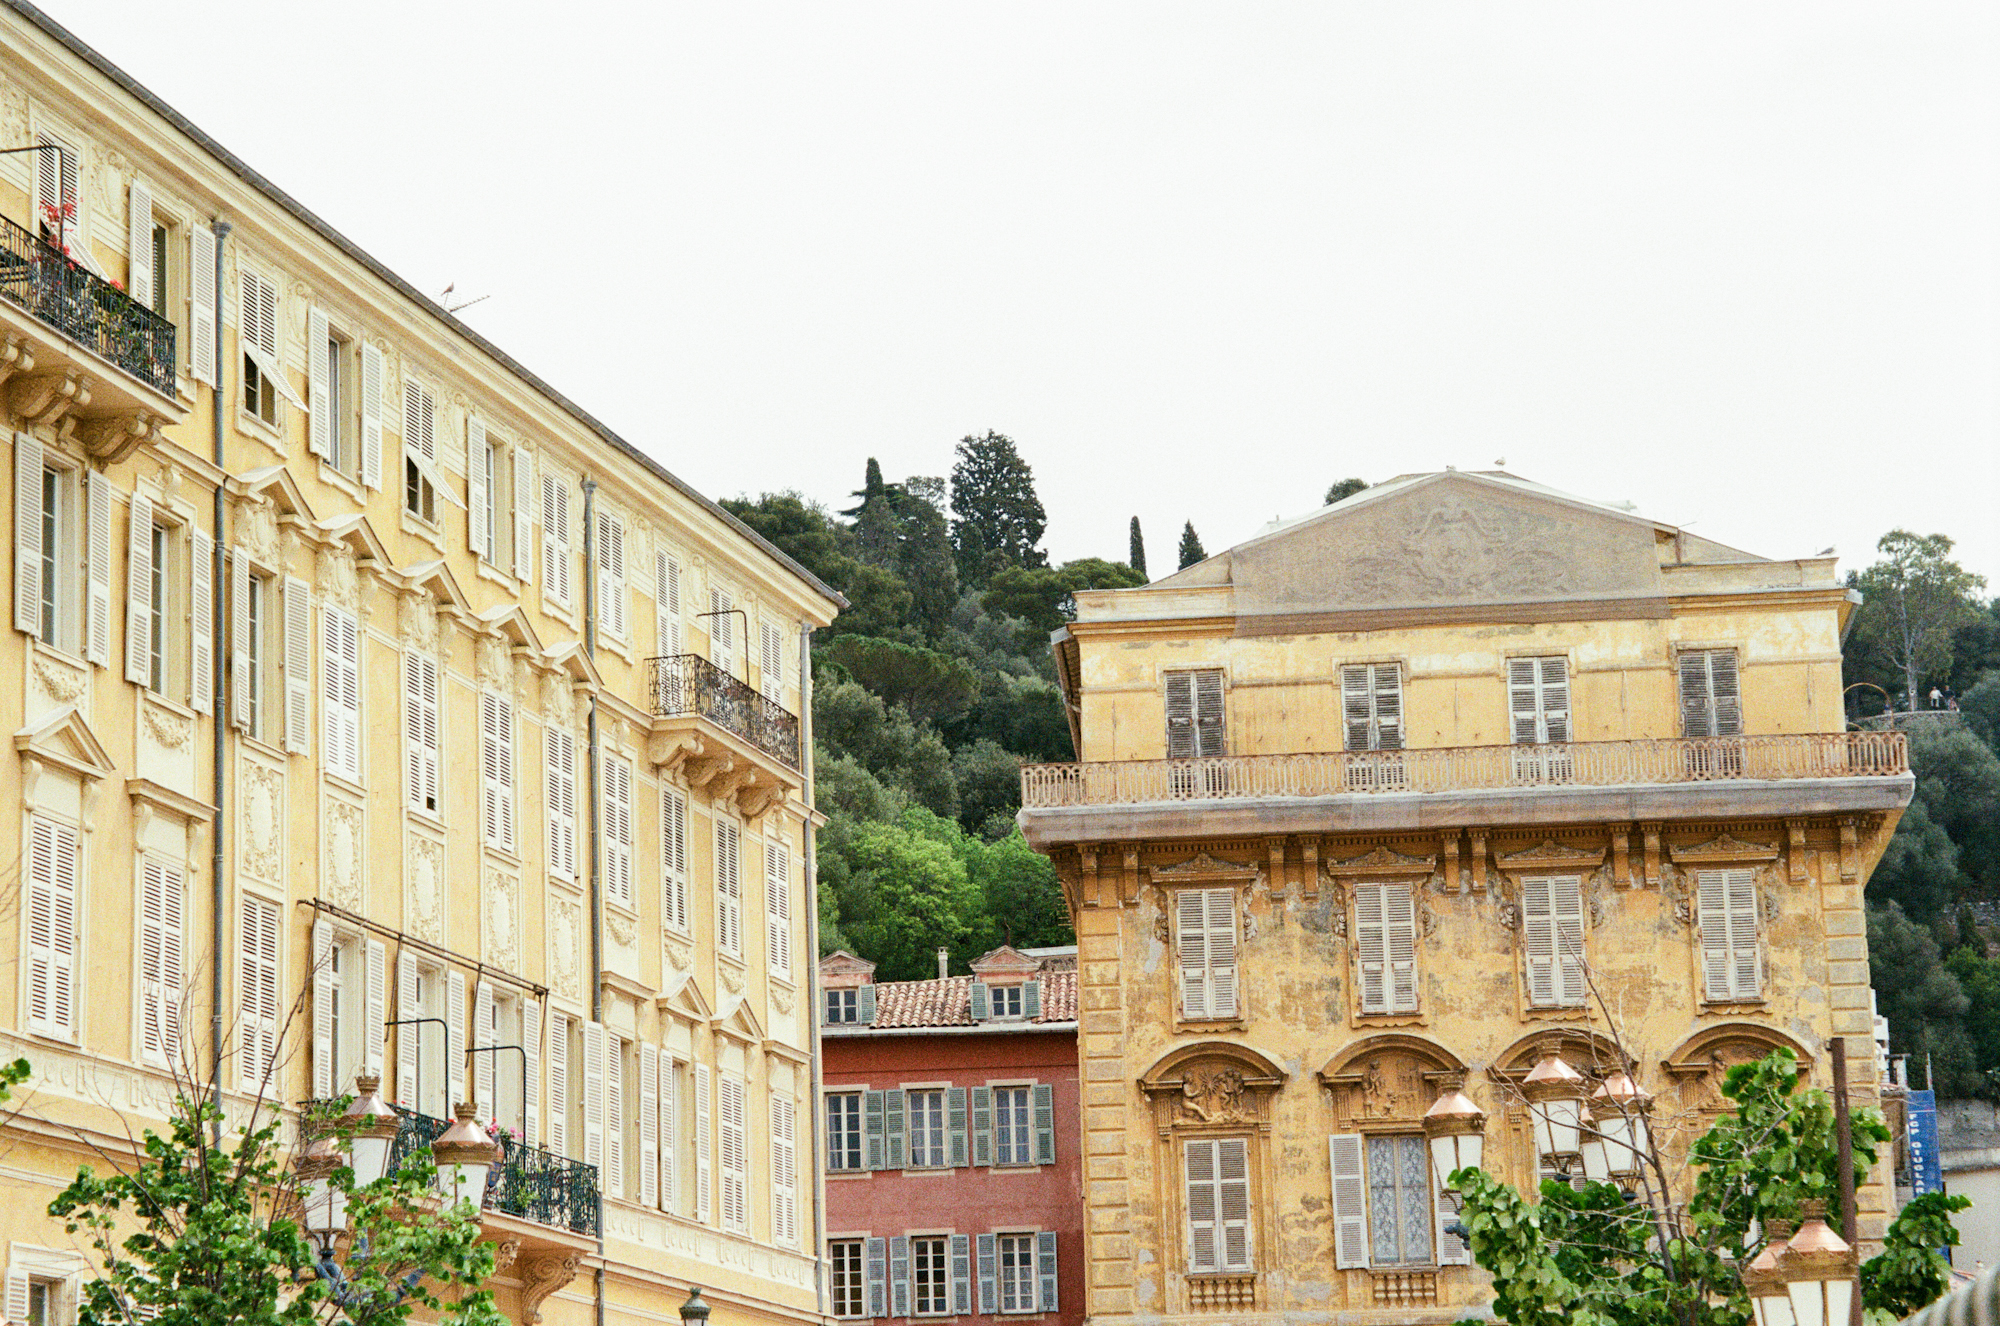 photo of old town Nice, France